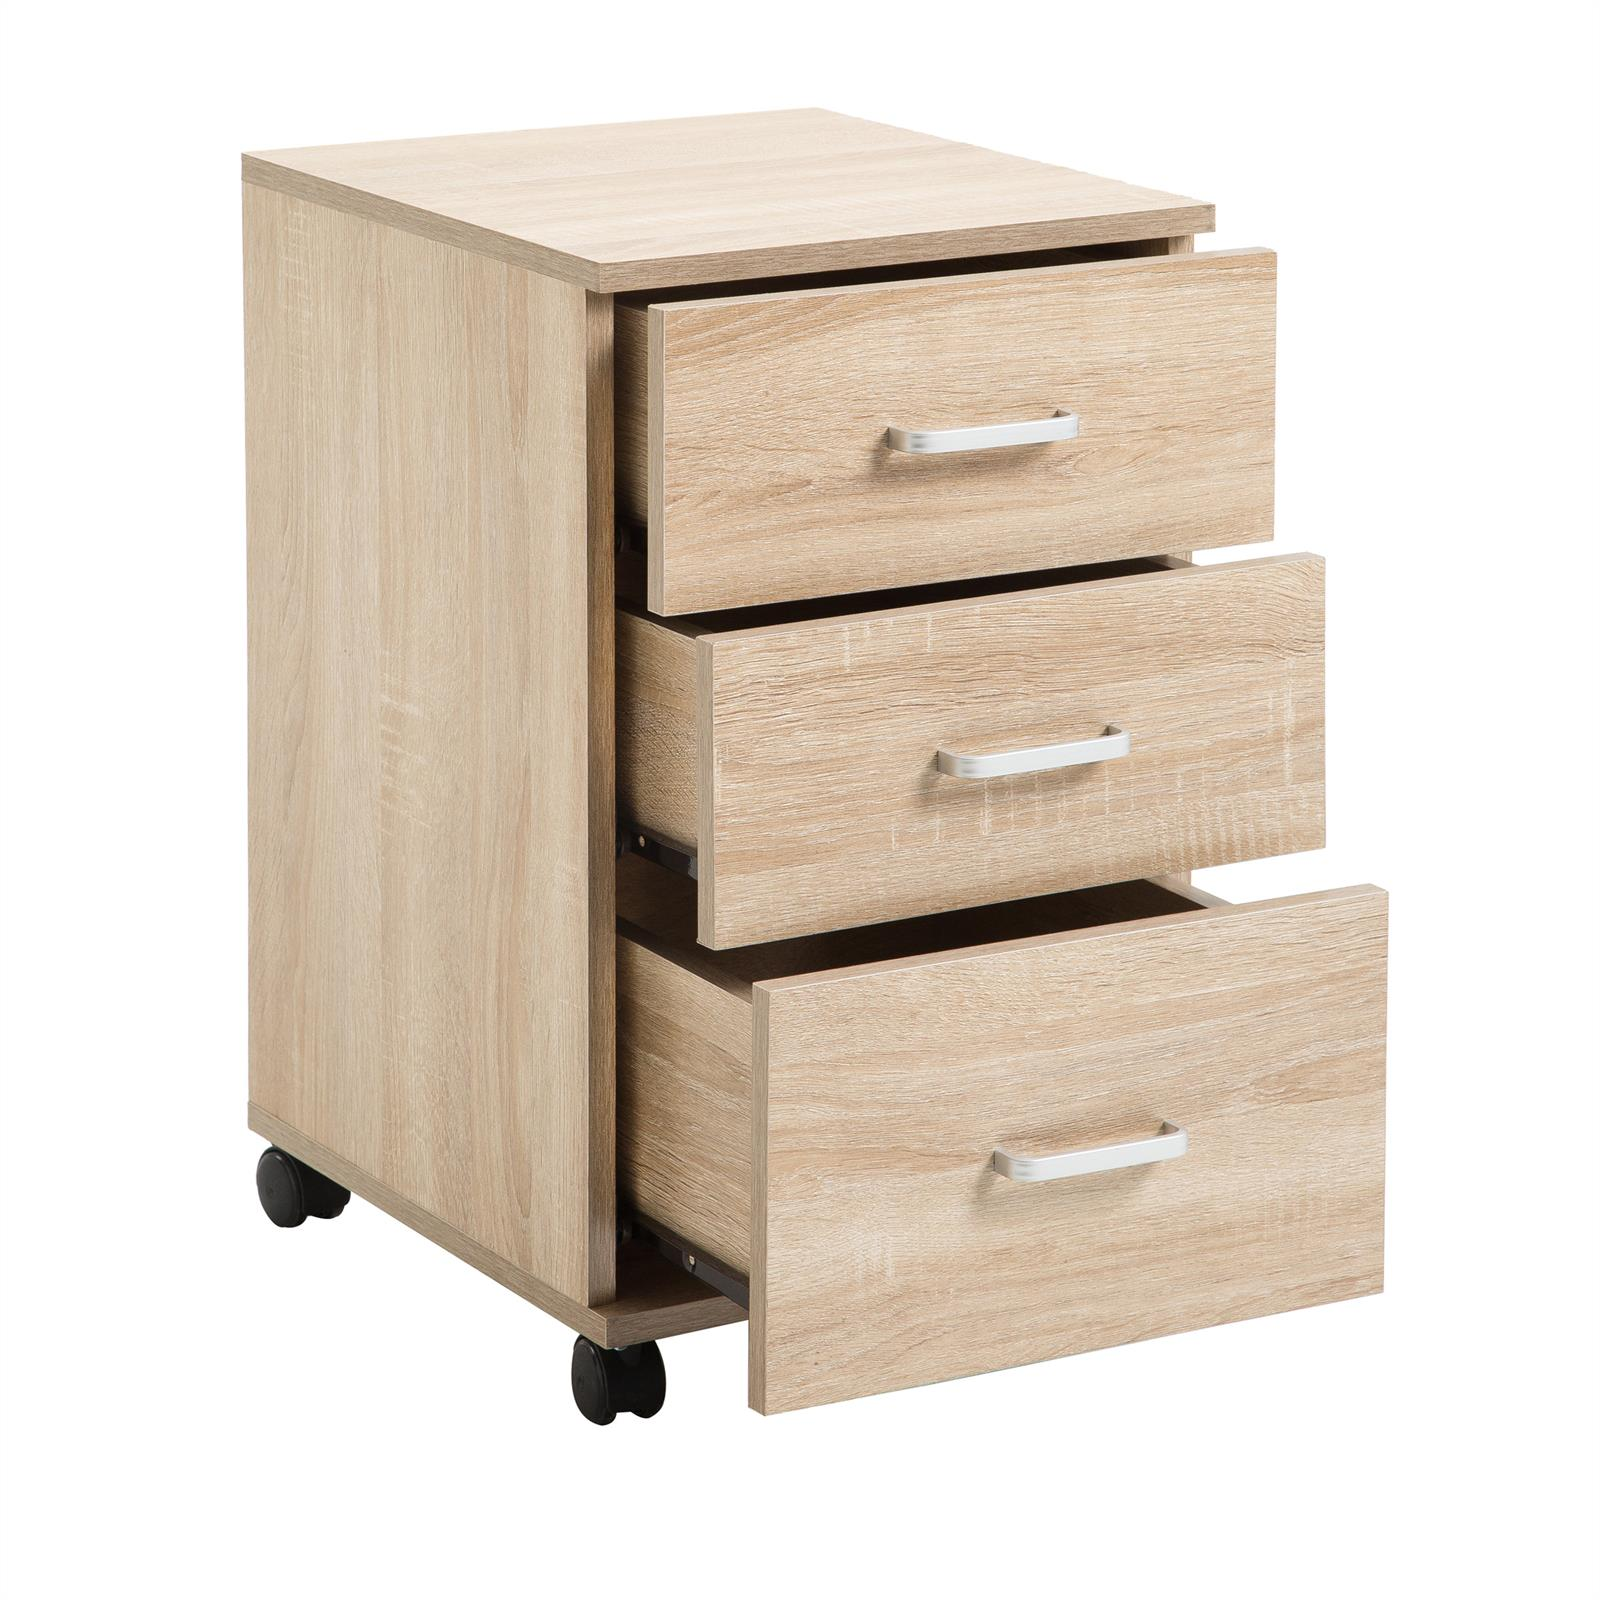 rollcontainer jupiter 3 schubladen in sonoma eiche caro m bel. Black Bedroom Furniture Sets. Home Design Ideas